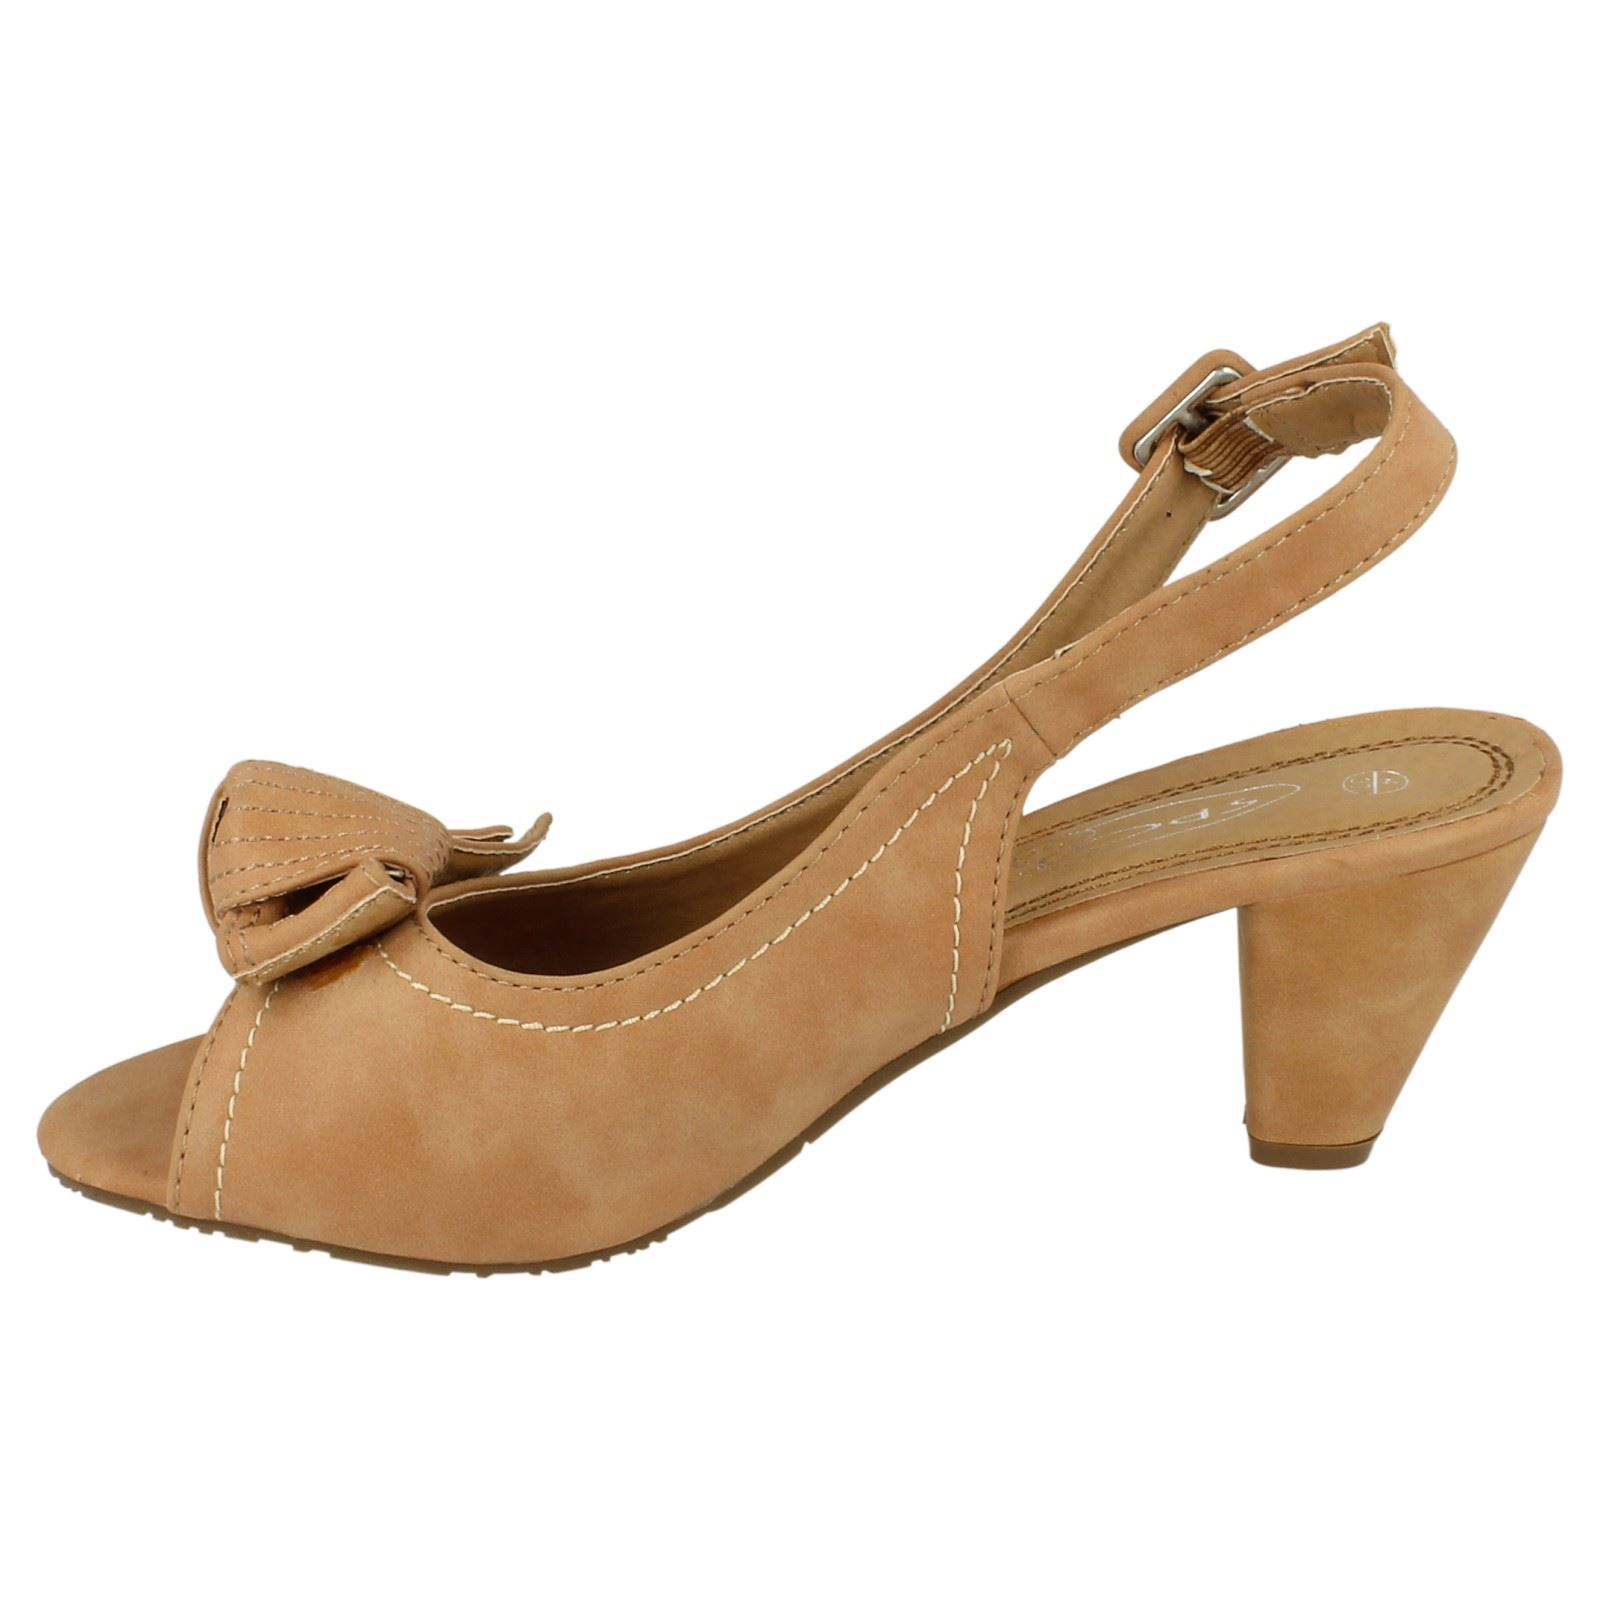 Damas Spot On Tacón Alto Peep Toe Sandalia